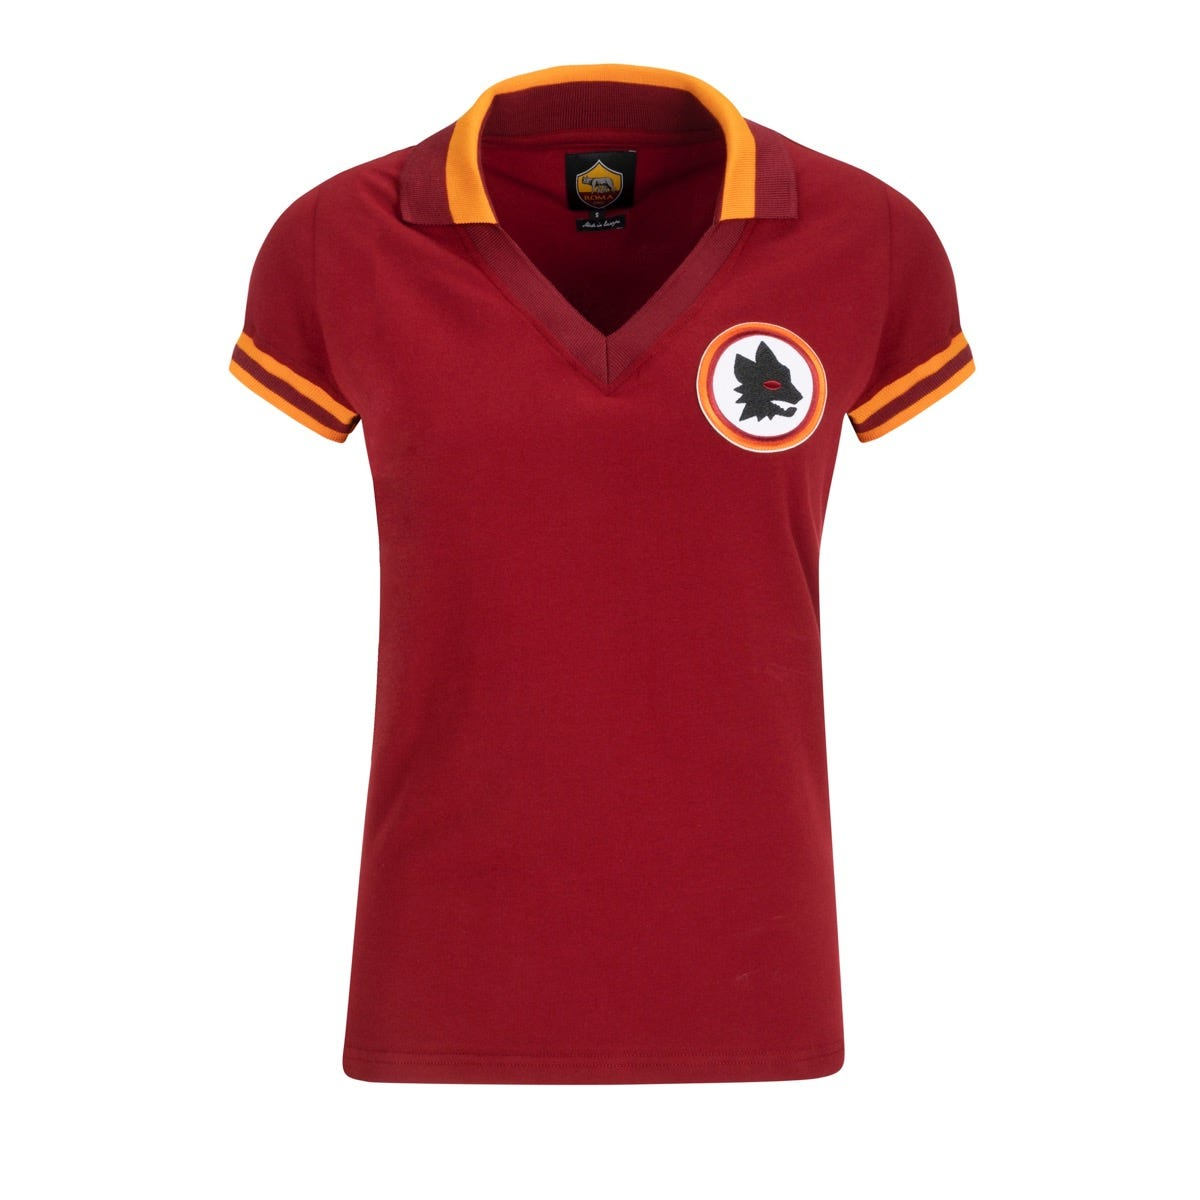 Women's AS ROMA Retro 1978/79 short-sleeved jersey – red